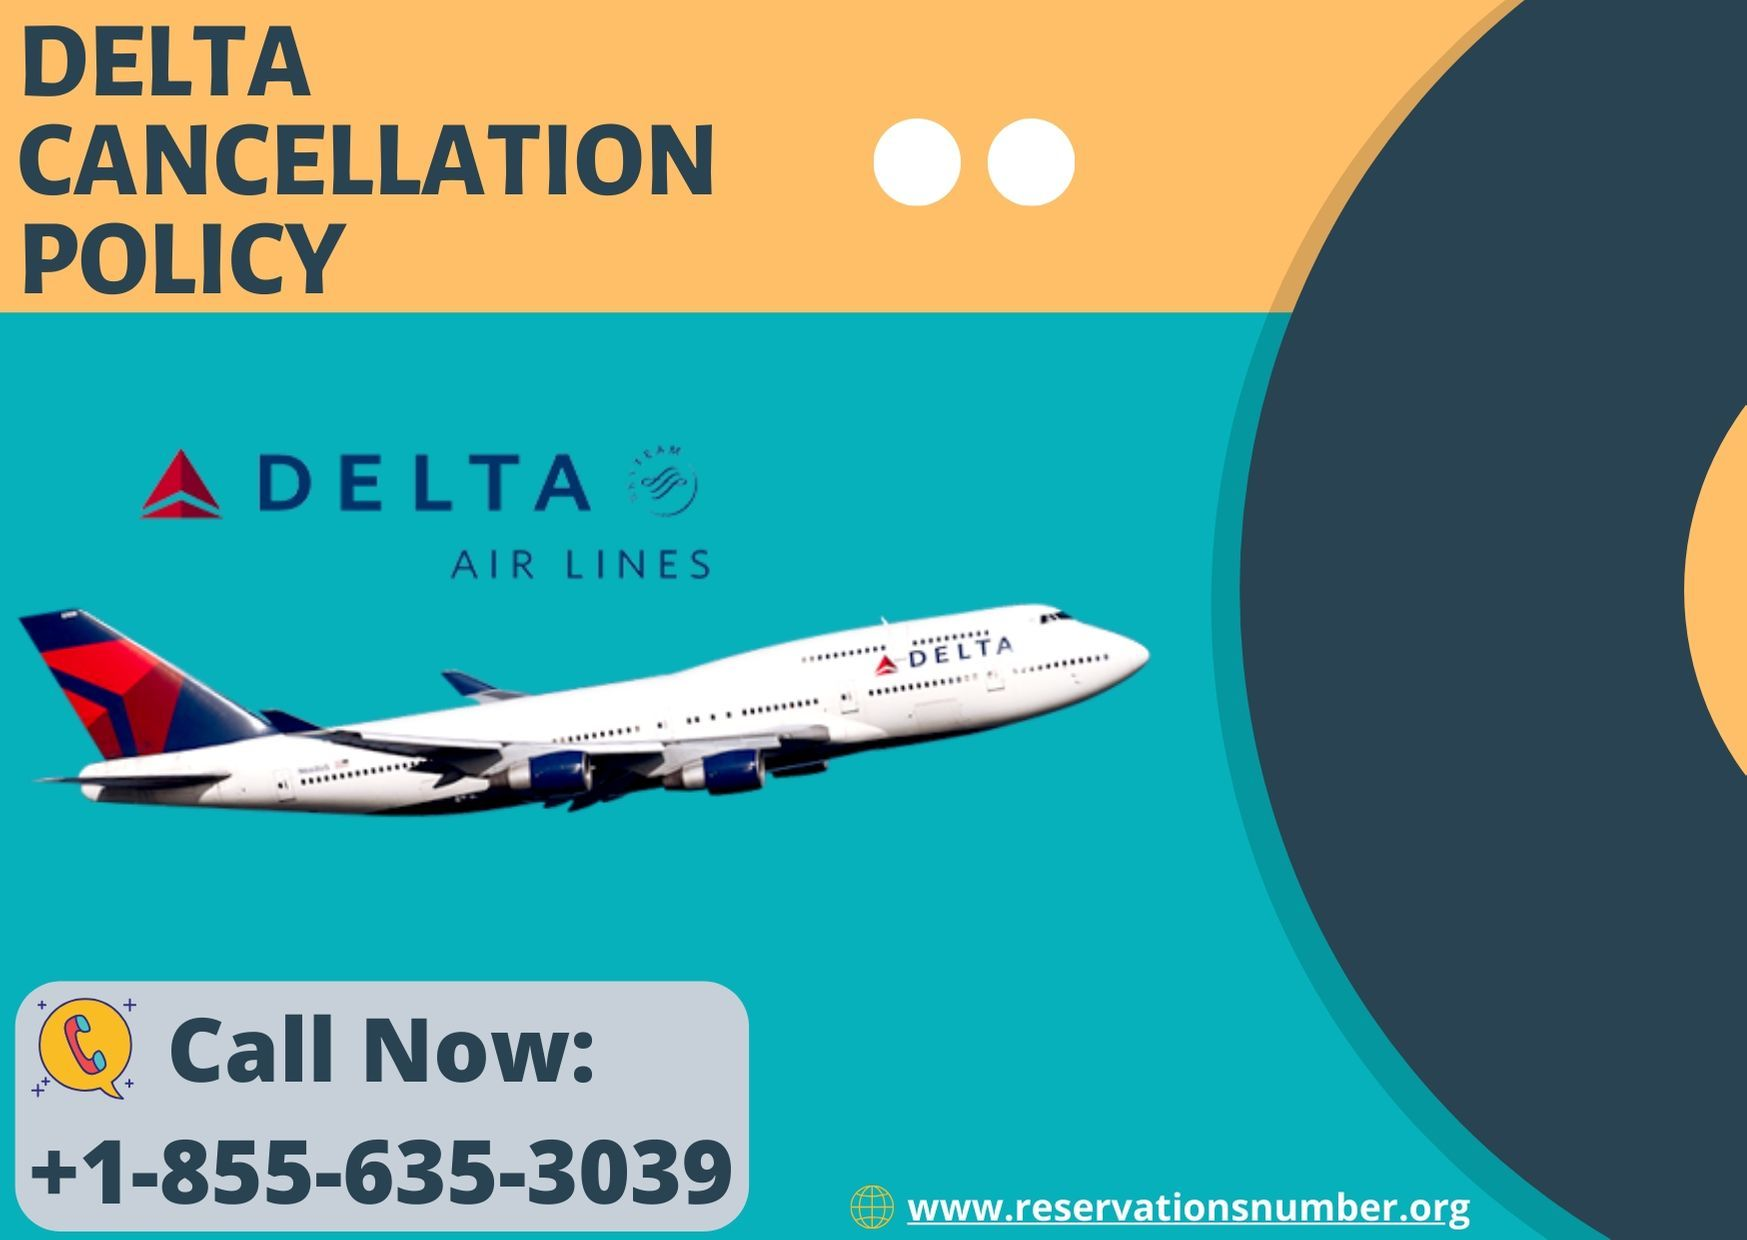 Delta Airlines 24 Hour Flight Cancellation Policy, Fee in